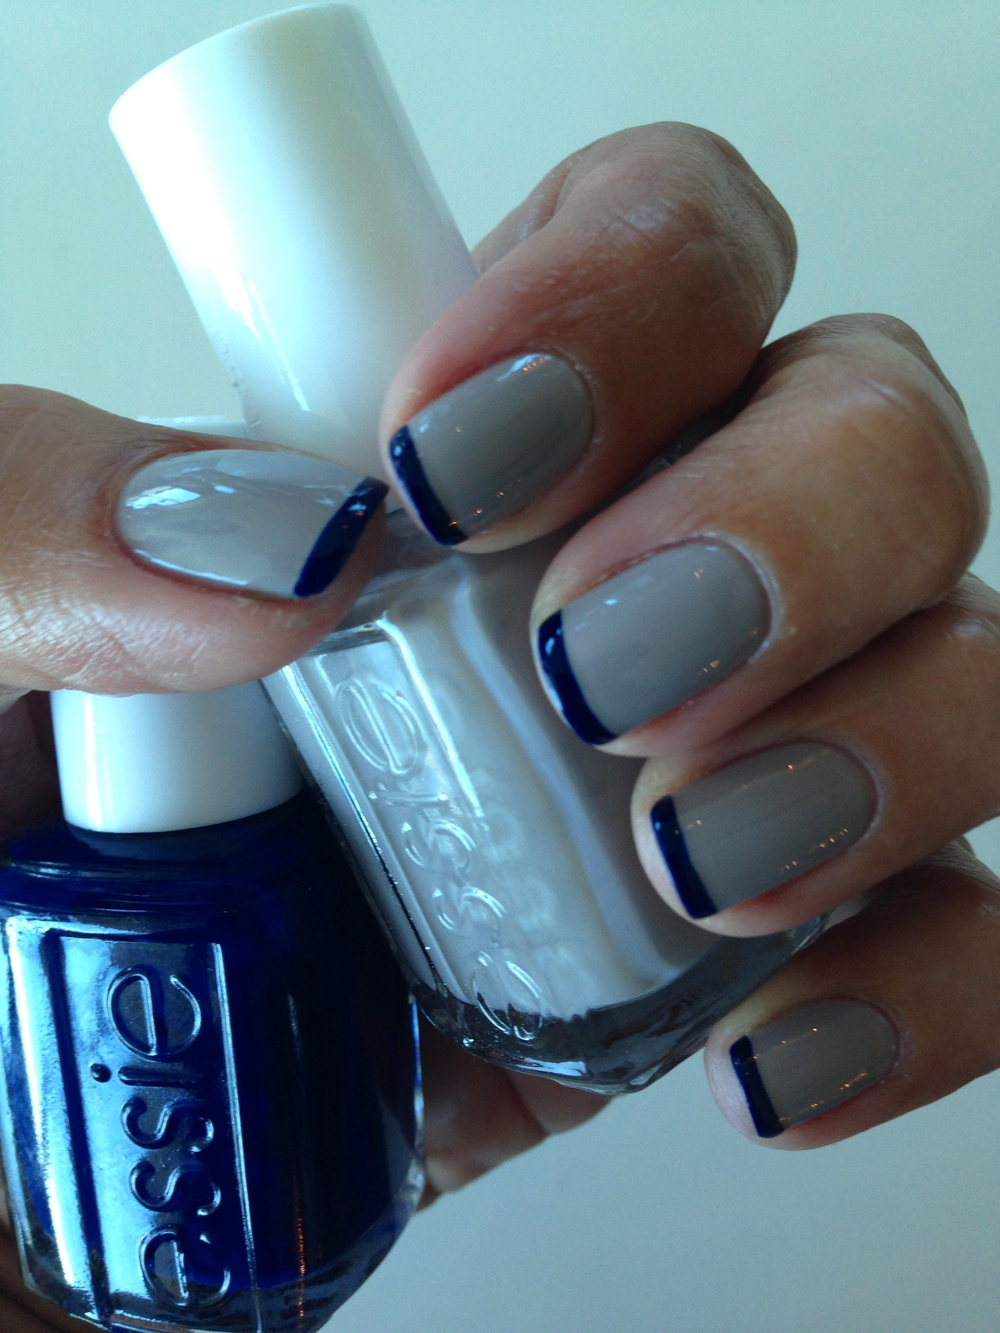 Nail color shown:  Take It Outside, $8.50. Blue Tips: Style Cartel, $8.50.     Both shades   from the new Fall 2014 collection by essie.